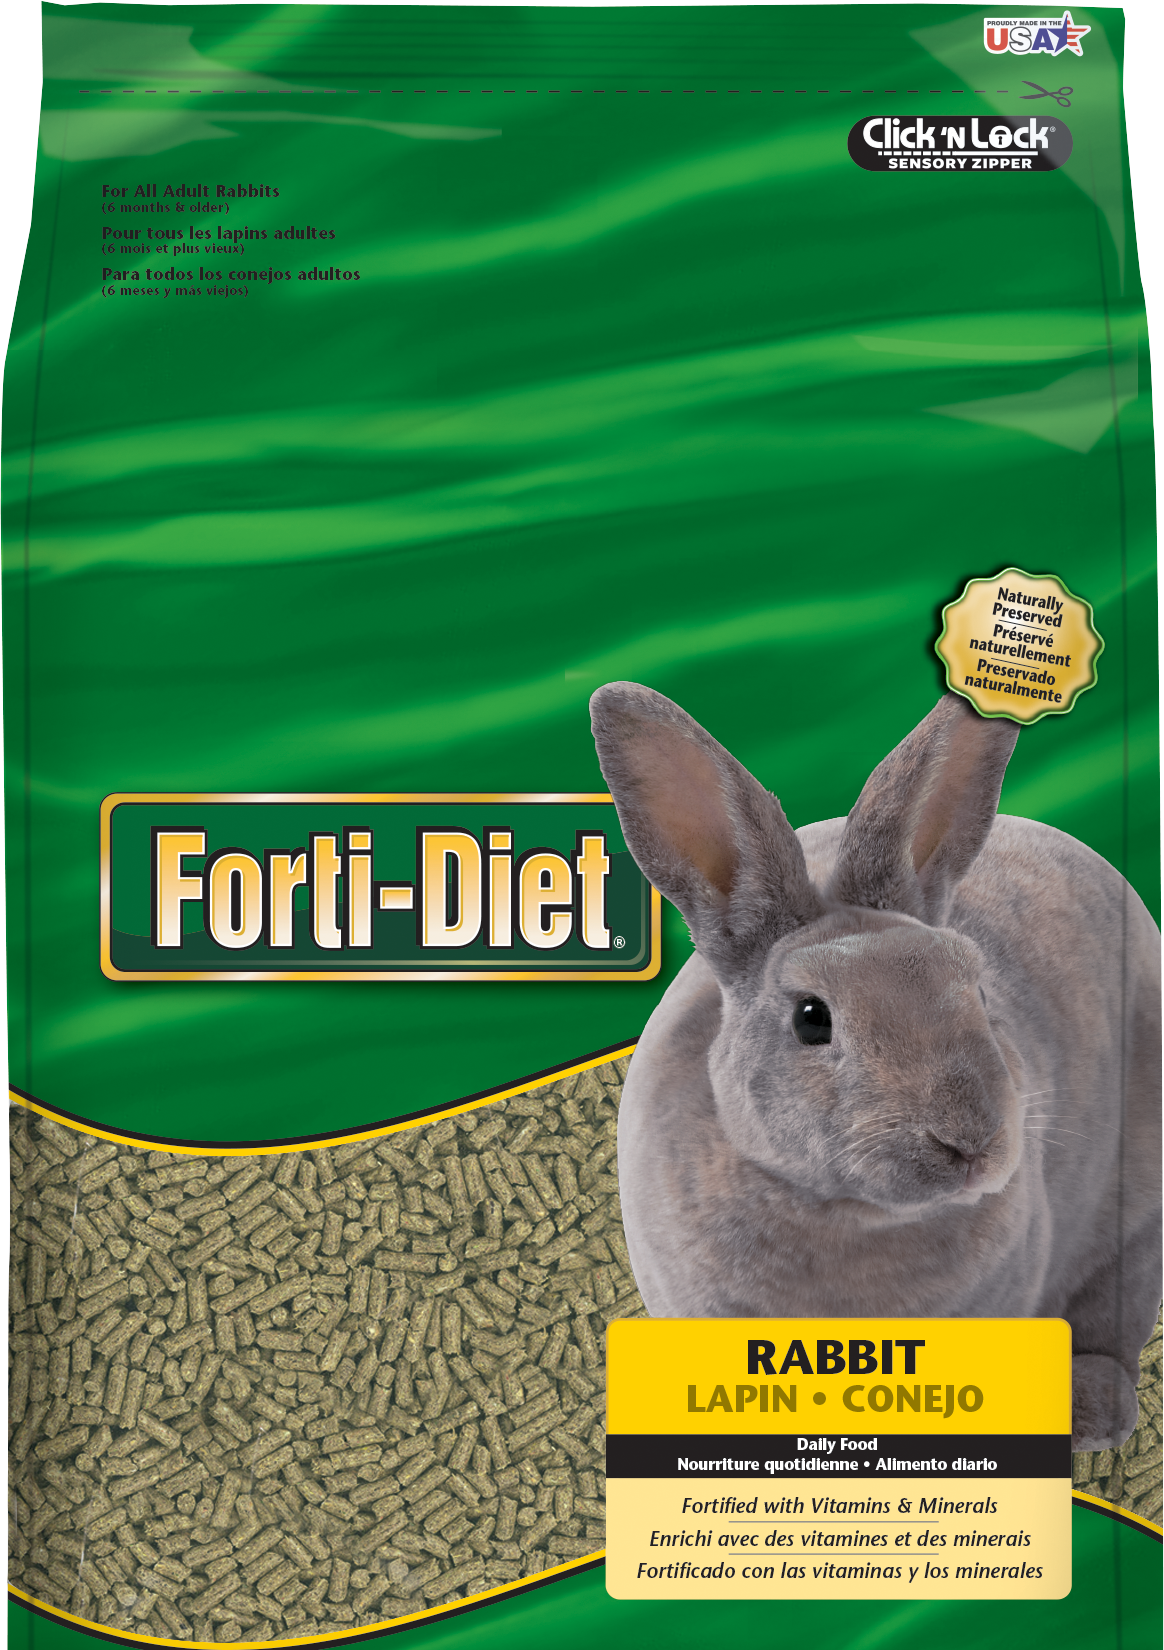 Forti-Diet Rabbit Food